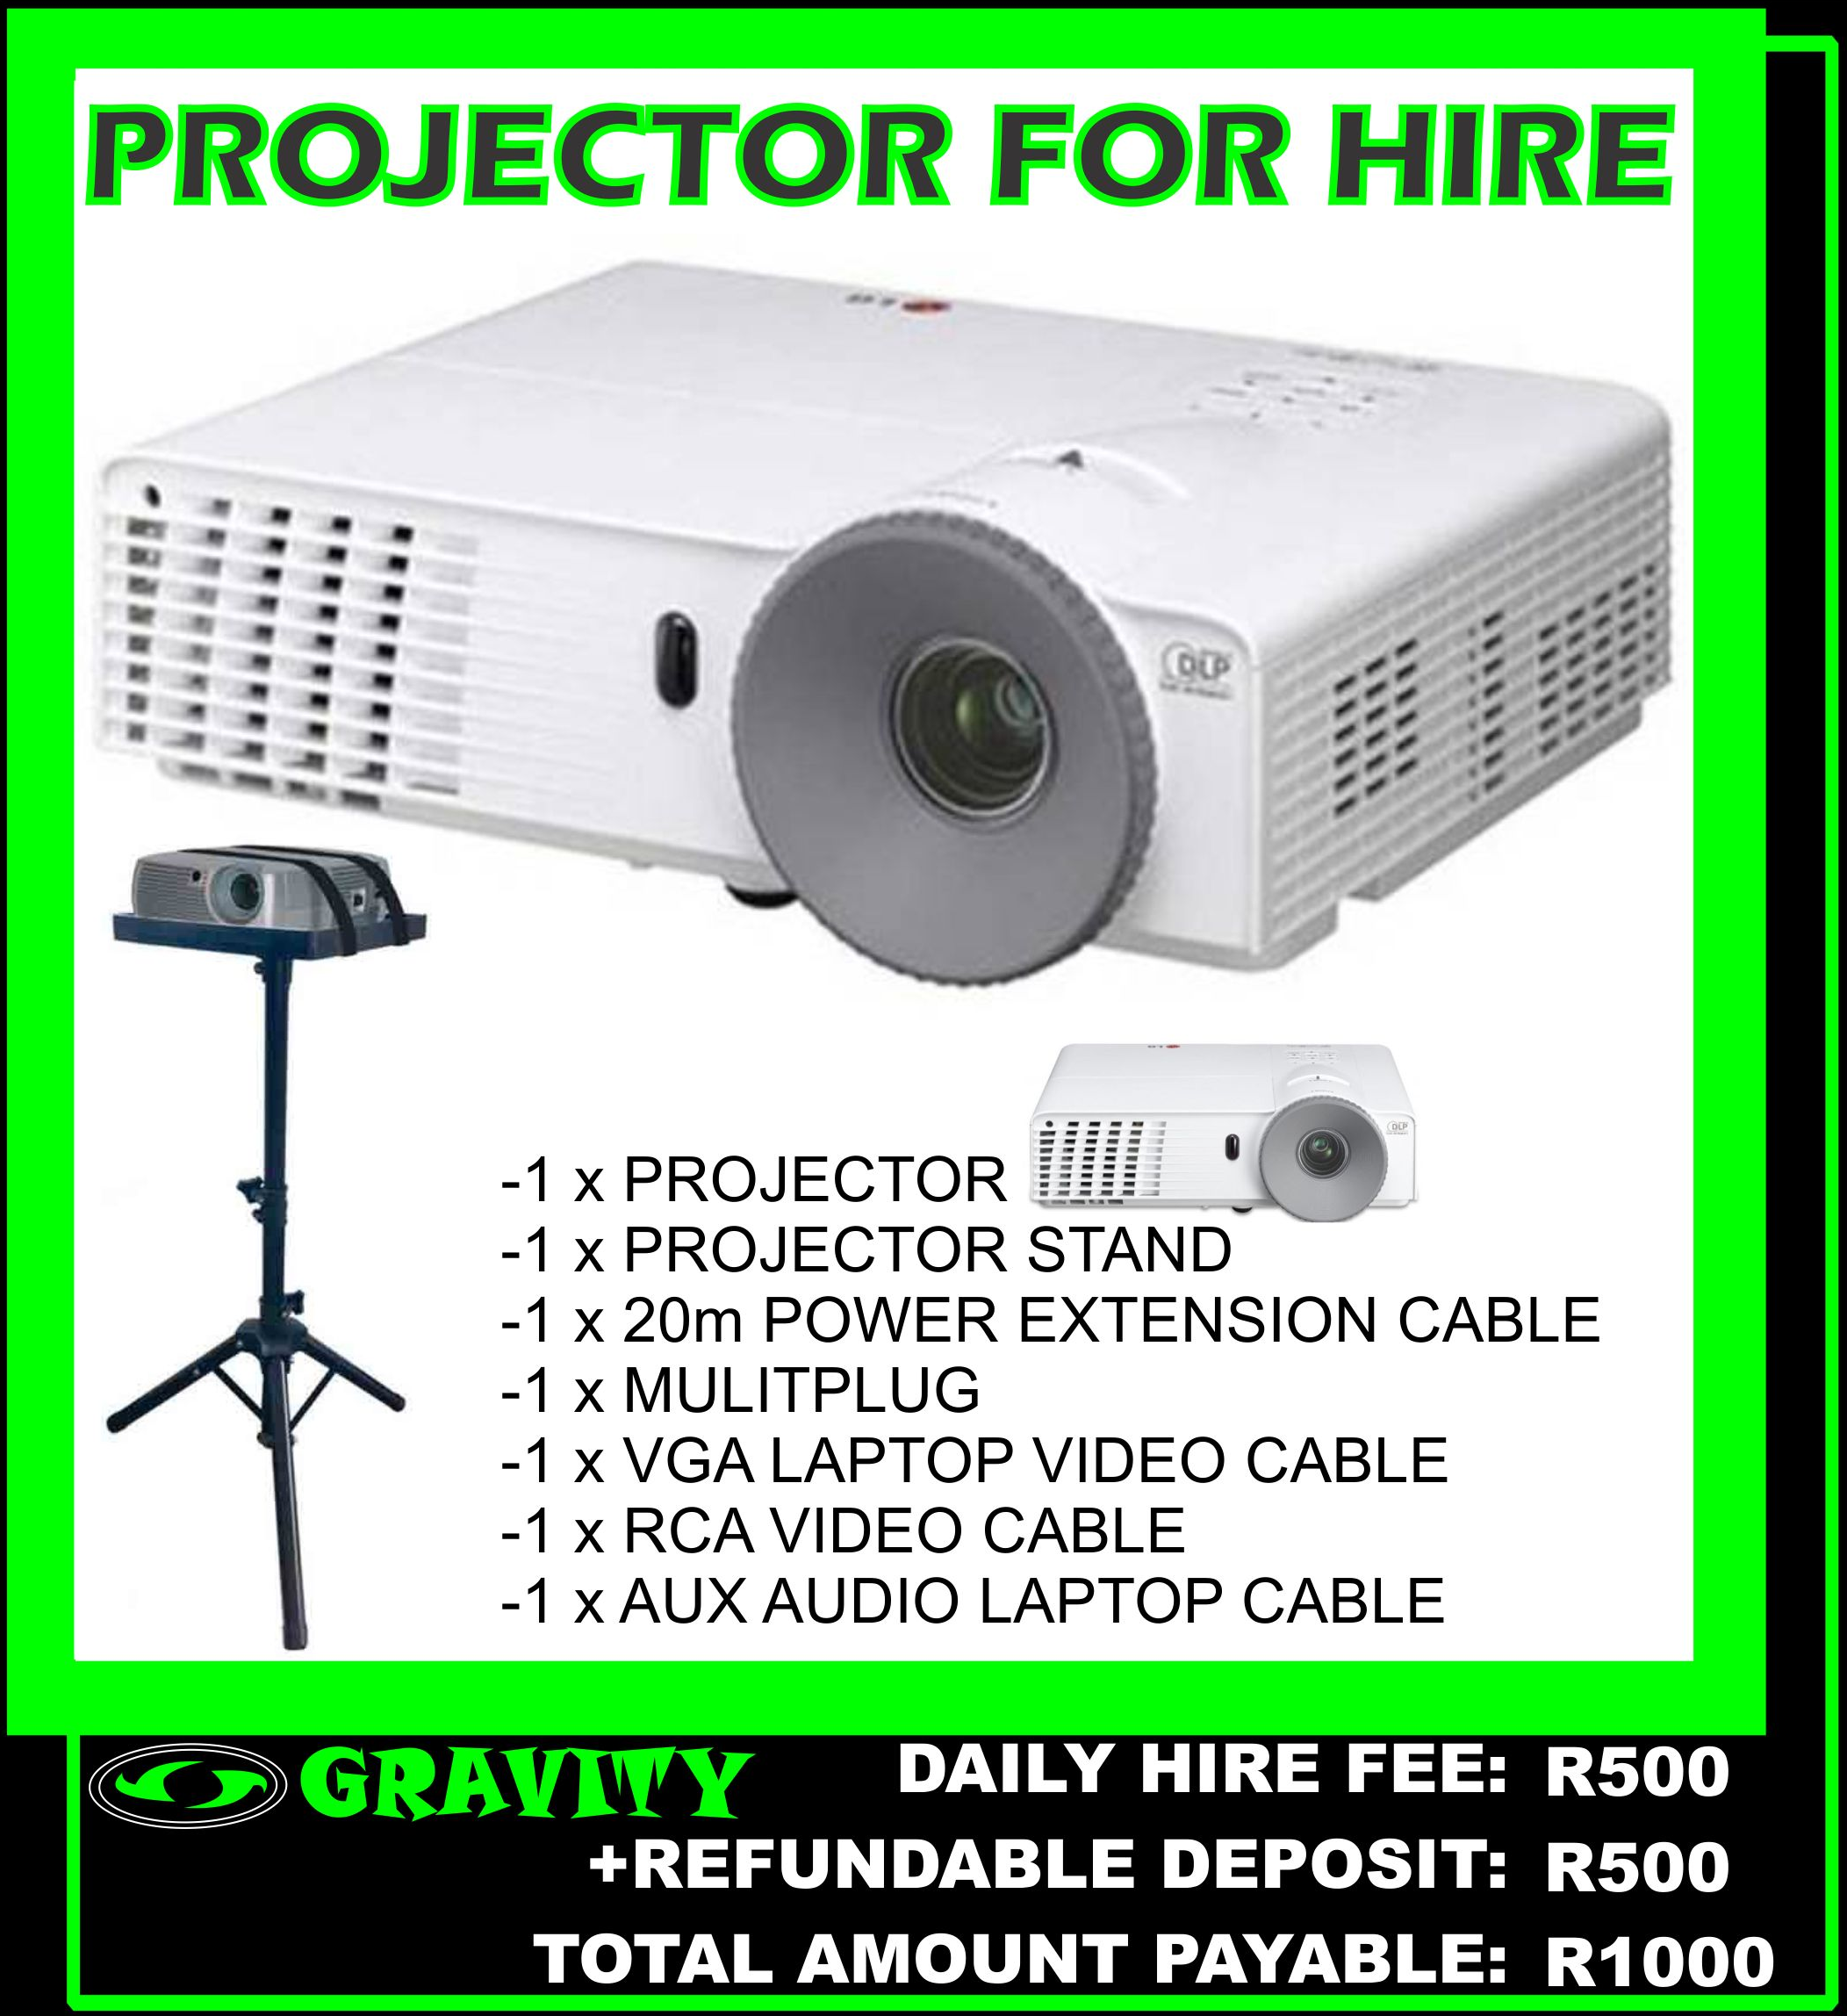 1.5m PROJECTOR SCREEN AND PROJECTOR COMBO FOR HIRE IN DURBAN AREA NOW AVAILABLE ON DAILY HIRE AT GRAVITY SOUND AND LIGHTING WAREHOUSE DURBAN PHOENIX 0315072463  OR 0315072736  DAILY HIRE FEE: R850  PROJECTOR +  1.5m PROJECTOR SCREEN  +  AND PROJECTOR ACCESSORIES     DOCUMENTS REQUIRED WHEN HIRING EQUIPMENT:  *COPY OF ID DOCUMENT (original SA id)  *CAR REGISTRATION NUMBER  *PROOF OF RESIDENCE (not older than 3months)